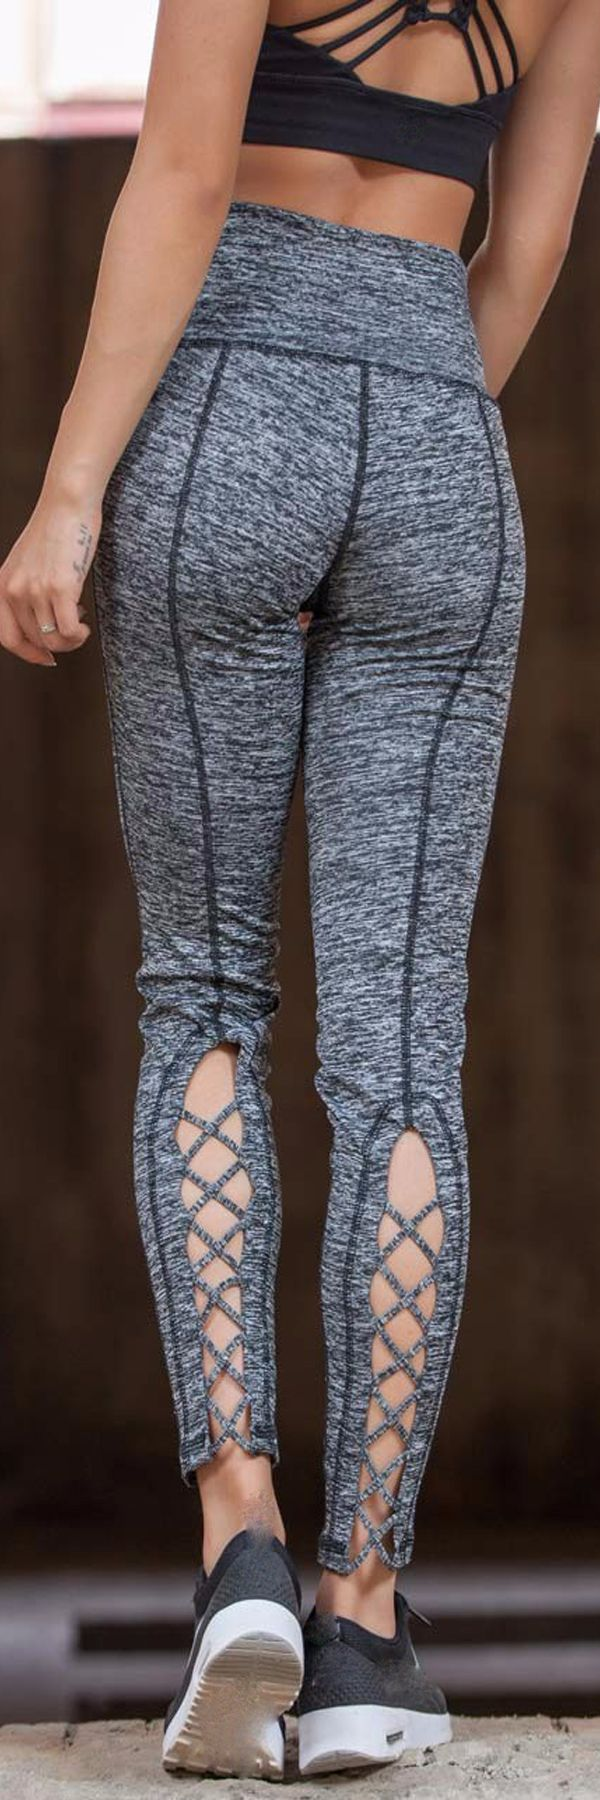 These Criss Cross Cutout Leggings Are Selling Like Crazy! They are super comfortable and supportive while providing the perfect amount of style and breathability. Don't forget to use code PIN20 to save an extra 20% off your entire order. Don't forget Free Shipping!